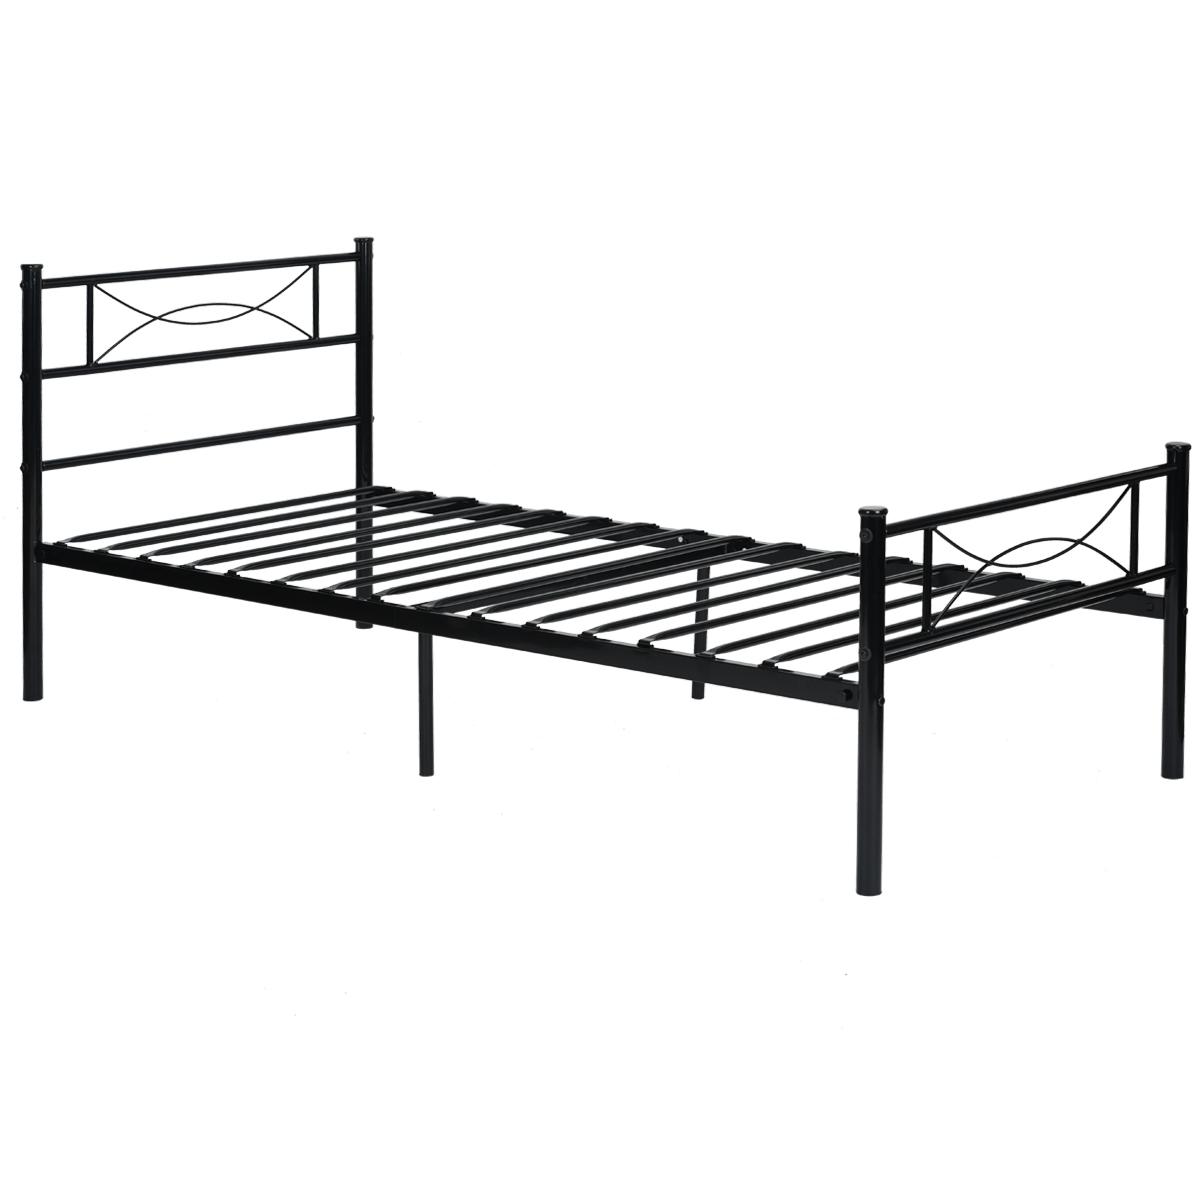 Metal Bed Frames bedroom metal bed frame platform mattress foundation headboard